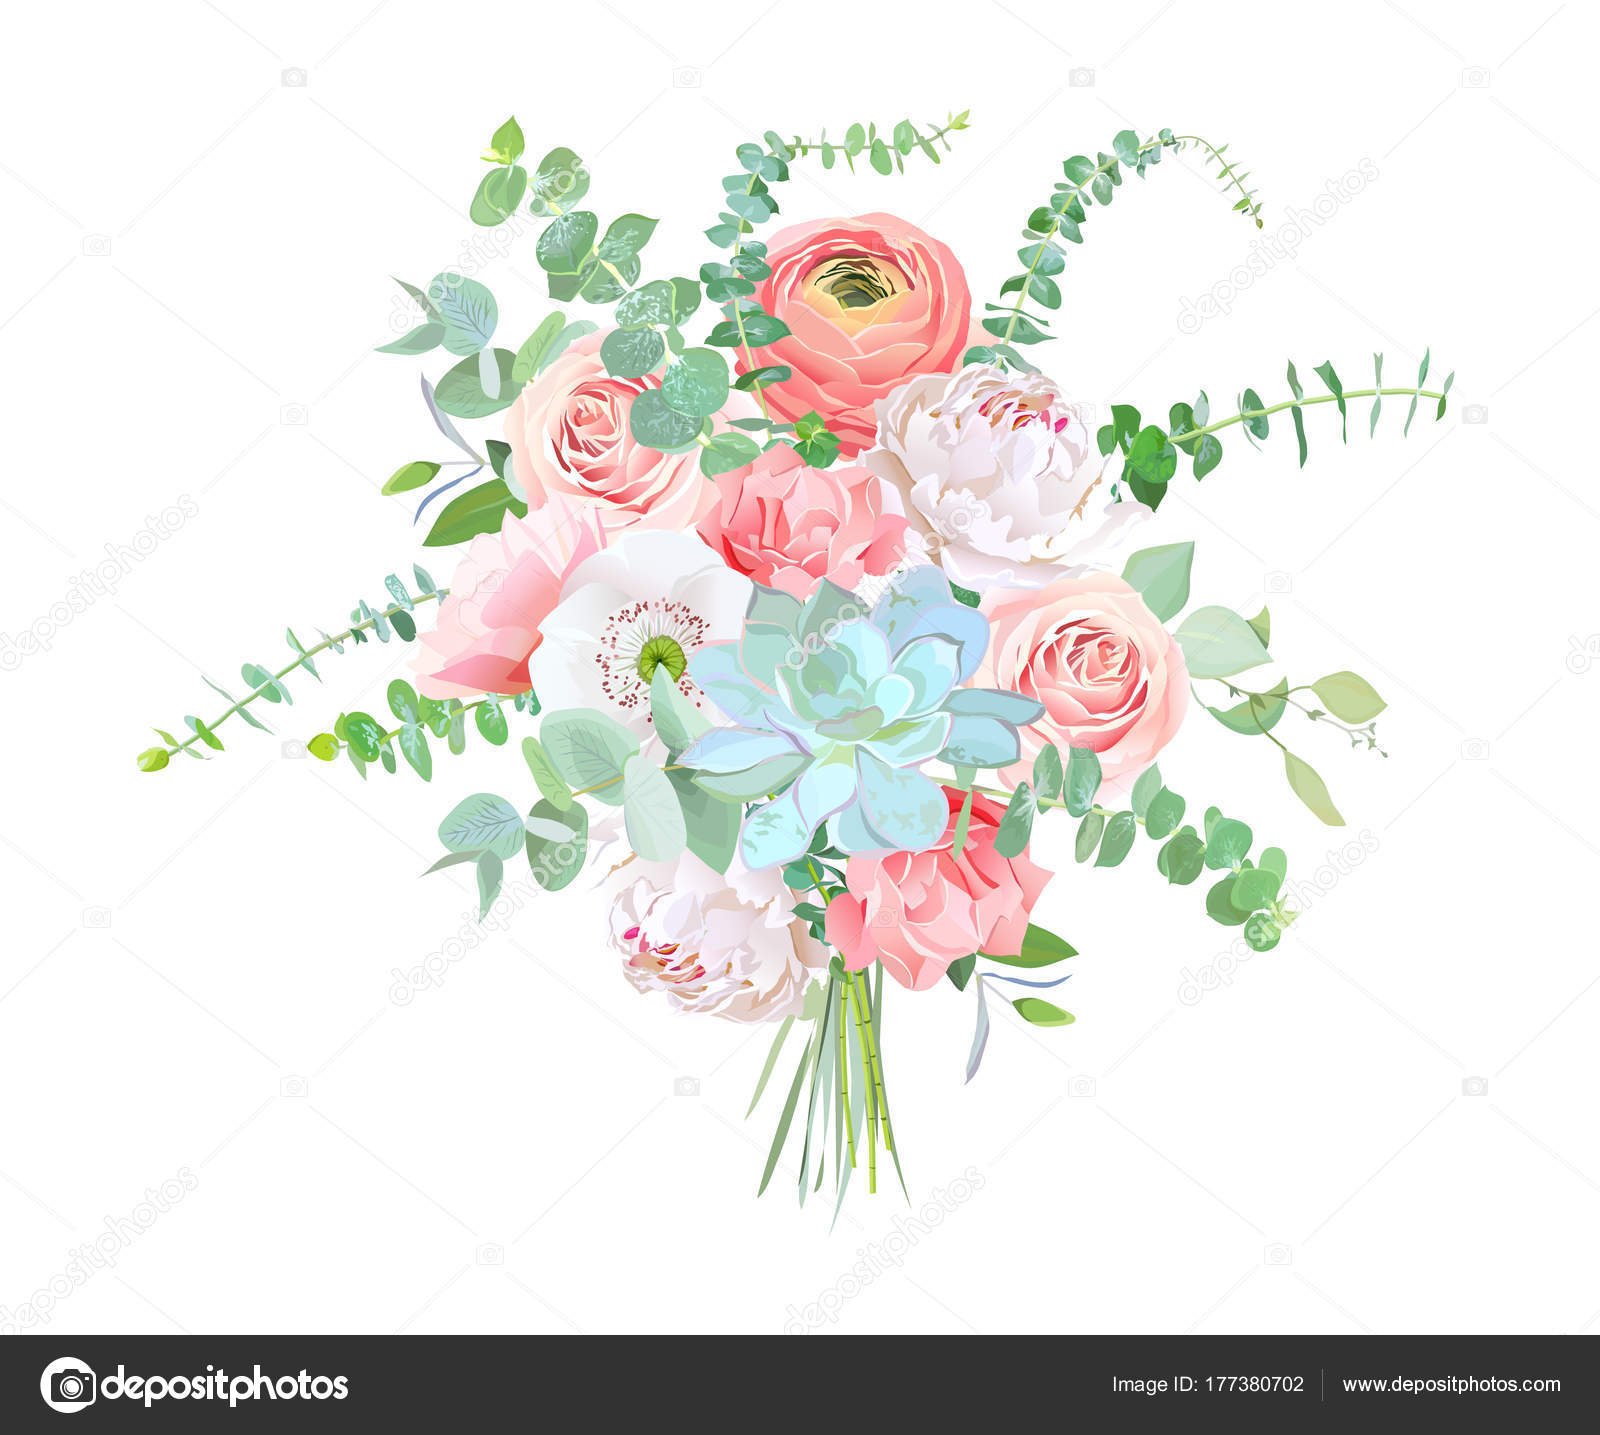 865c52bb01cf0 Watercolor style flowers bouquet. Ranunculus, peony, rose, white poppy, pink  carnation, succulent, baby blue eucalyptus. Vector greenery illustration  for ...